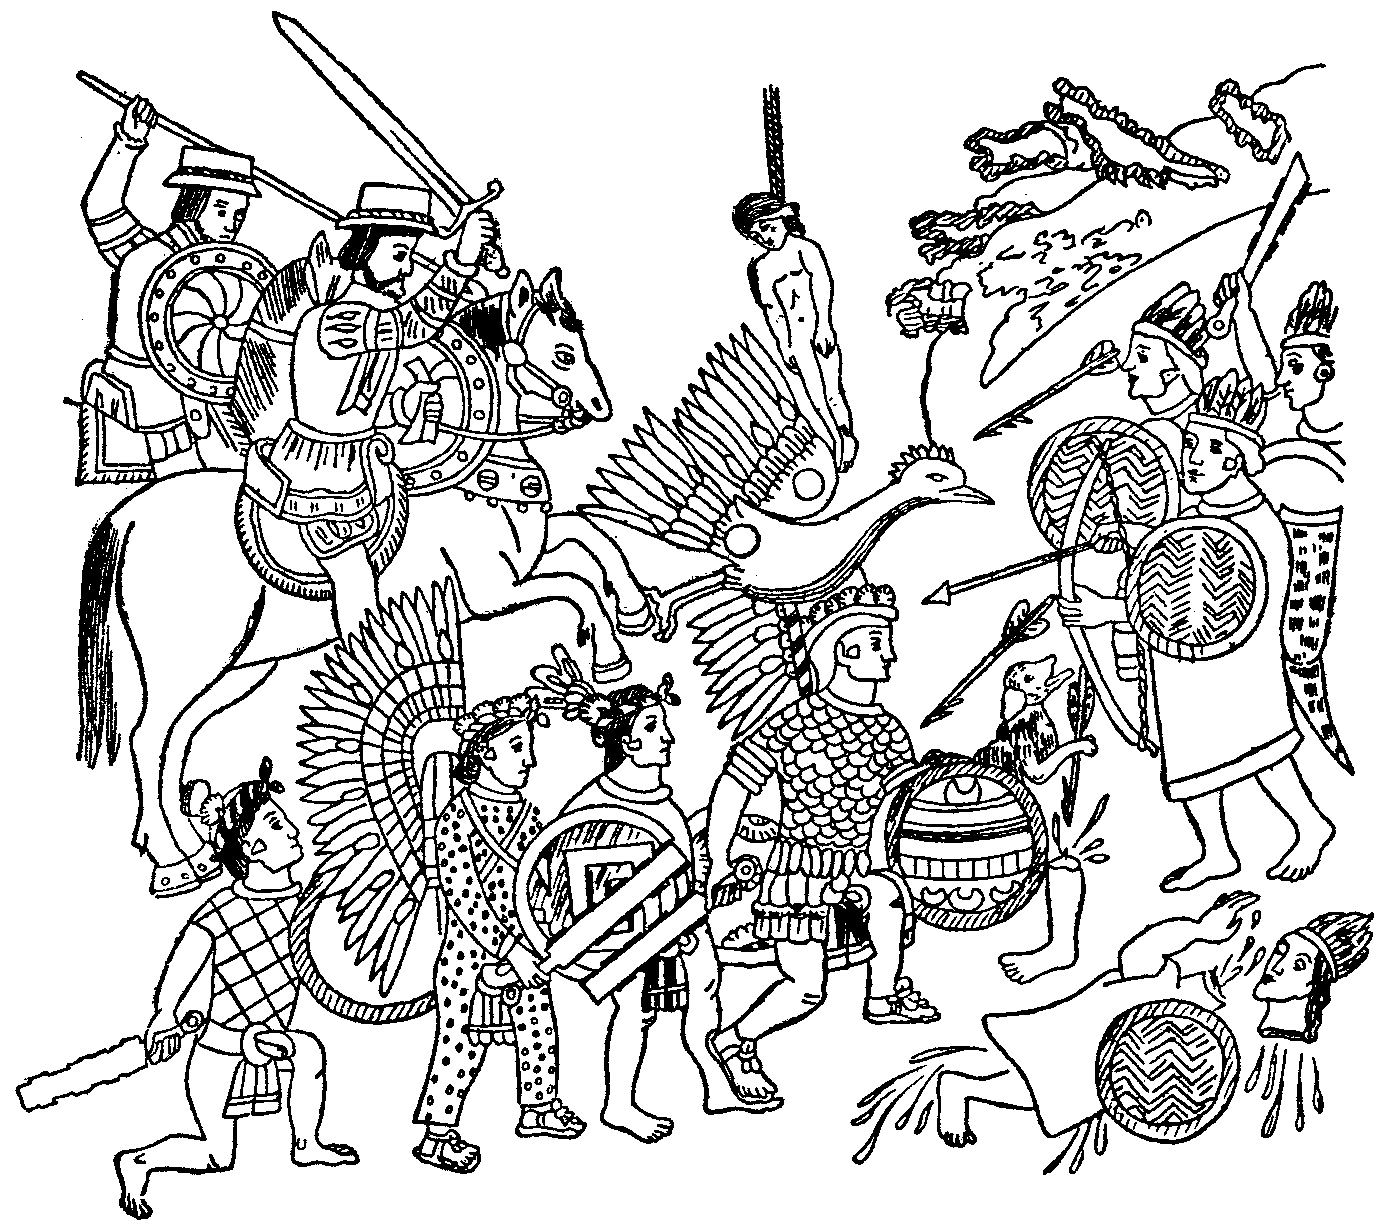 Inca Coloring Pages At Getcolorings